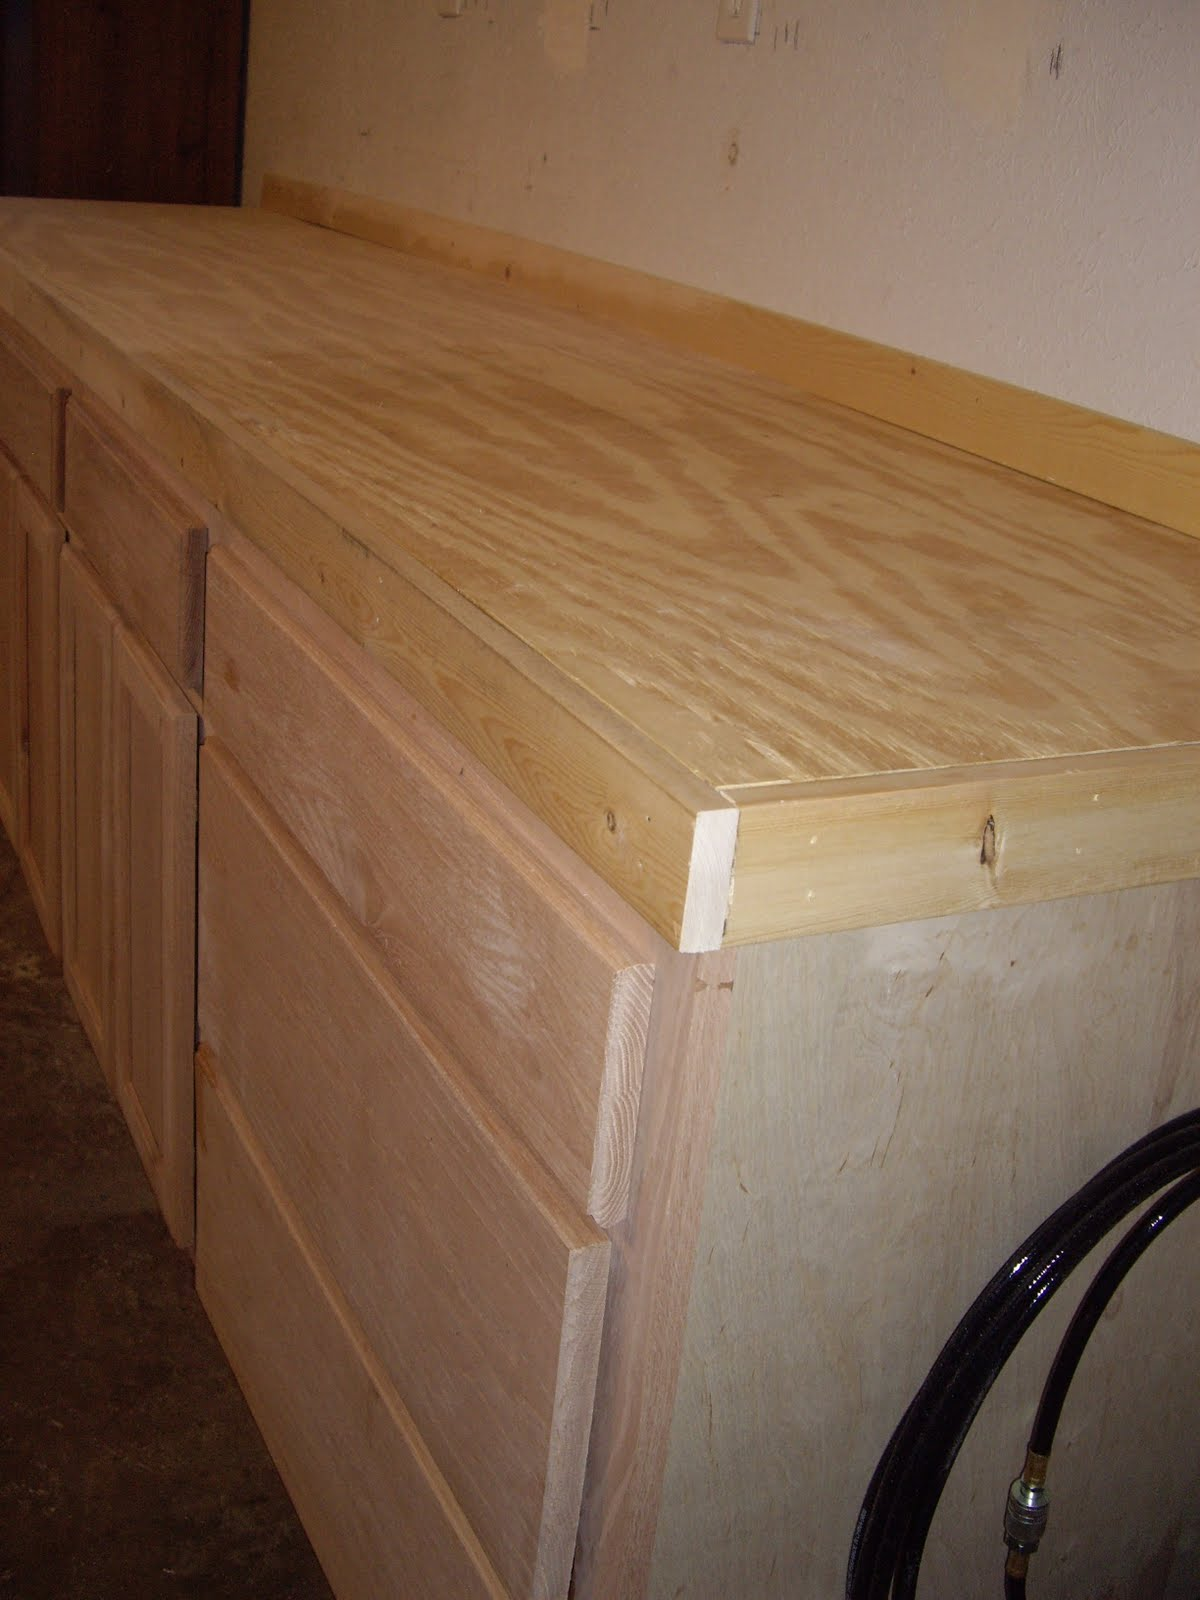 garage utility sink ideas - Best Woodworking Plans Website Plans to Making How To